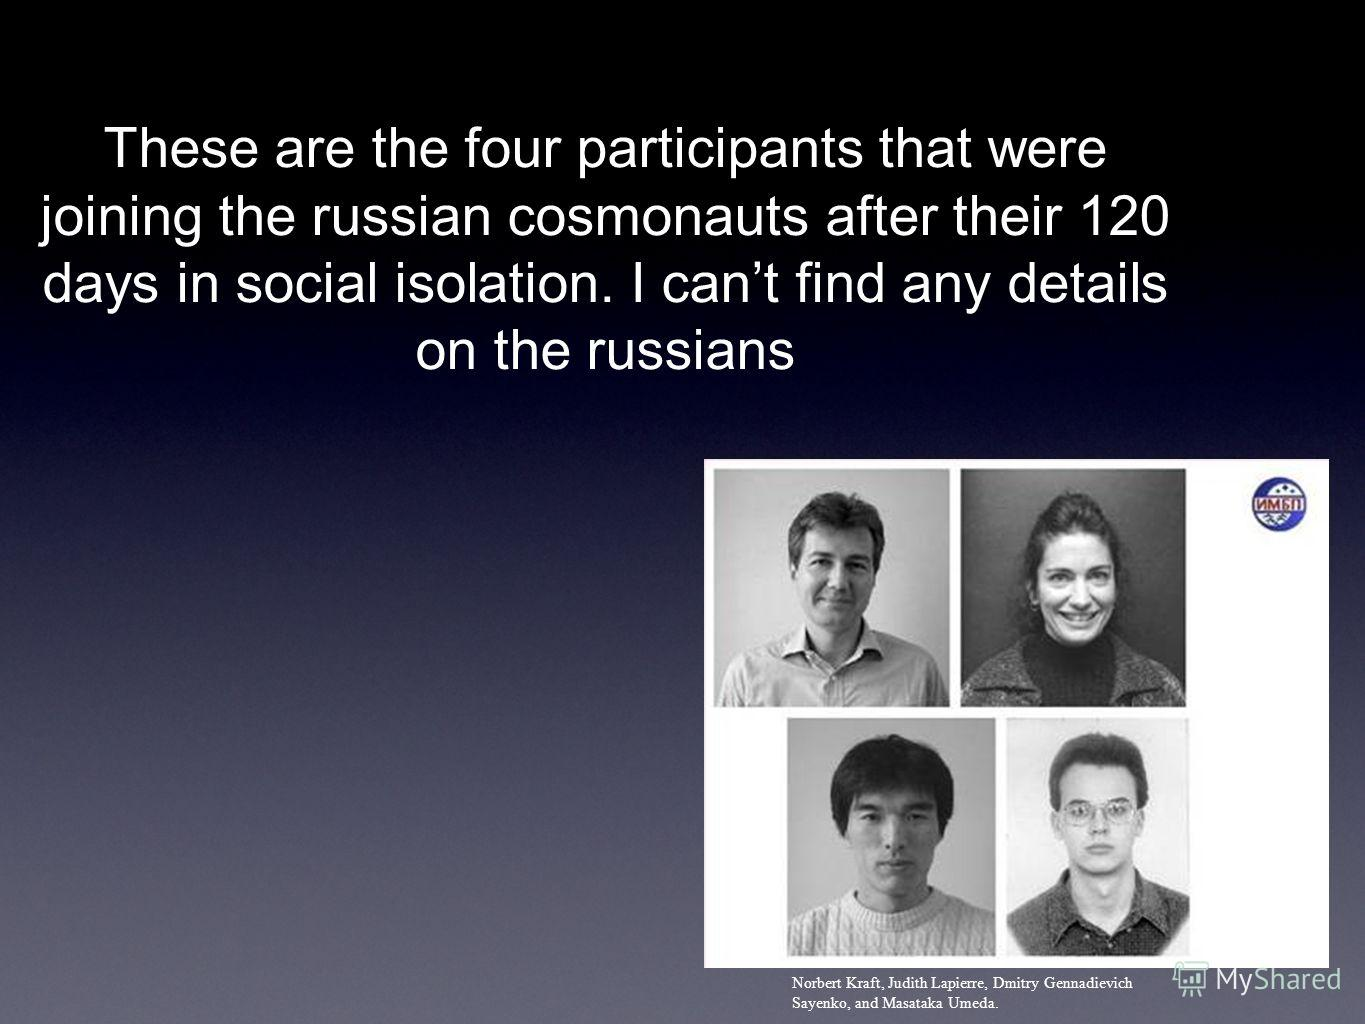 Norbert Kraft, Judith Lapierre, Dmitry Gennadievich Sayenko, and Masataka Umeda. These are the four participants that were joining the russian cosmonauts after their 120 days in social isolation. I cant find any details on the russians